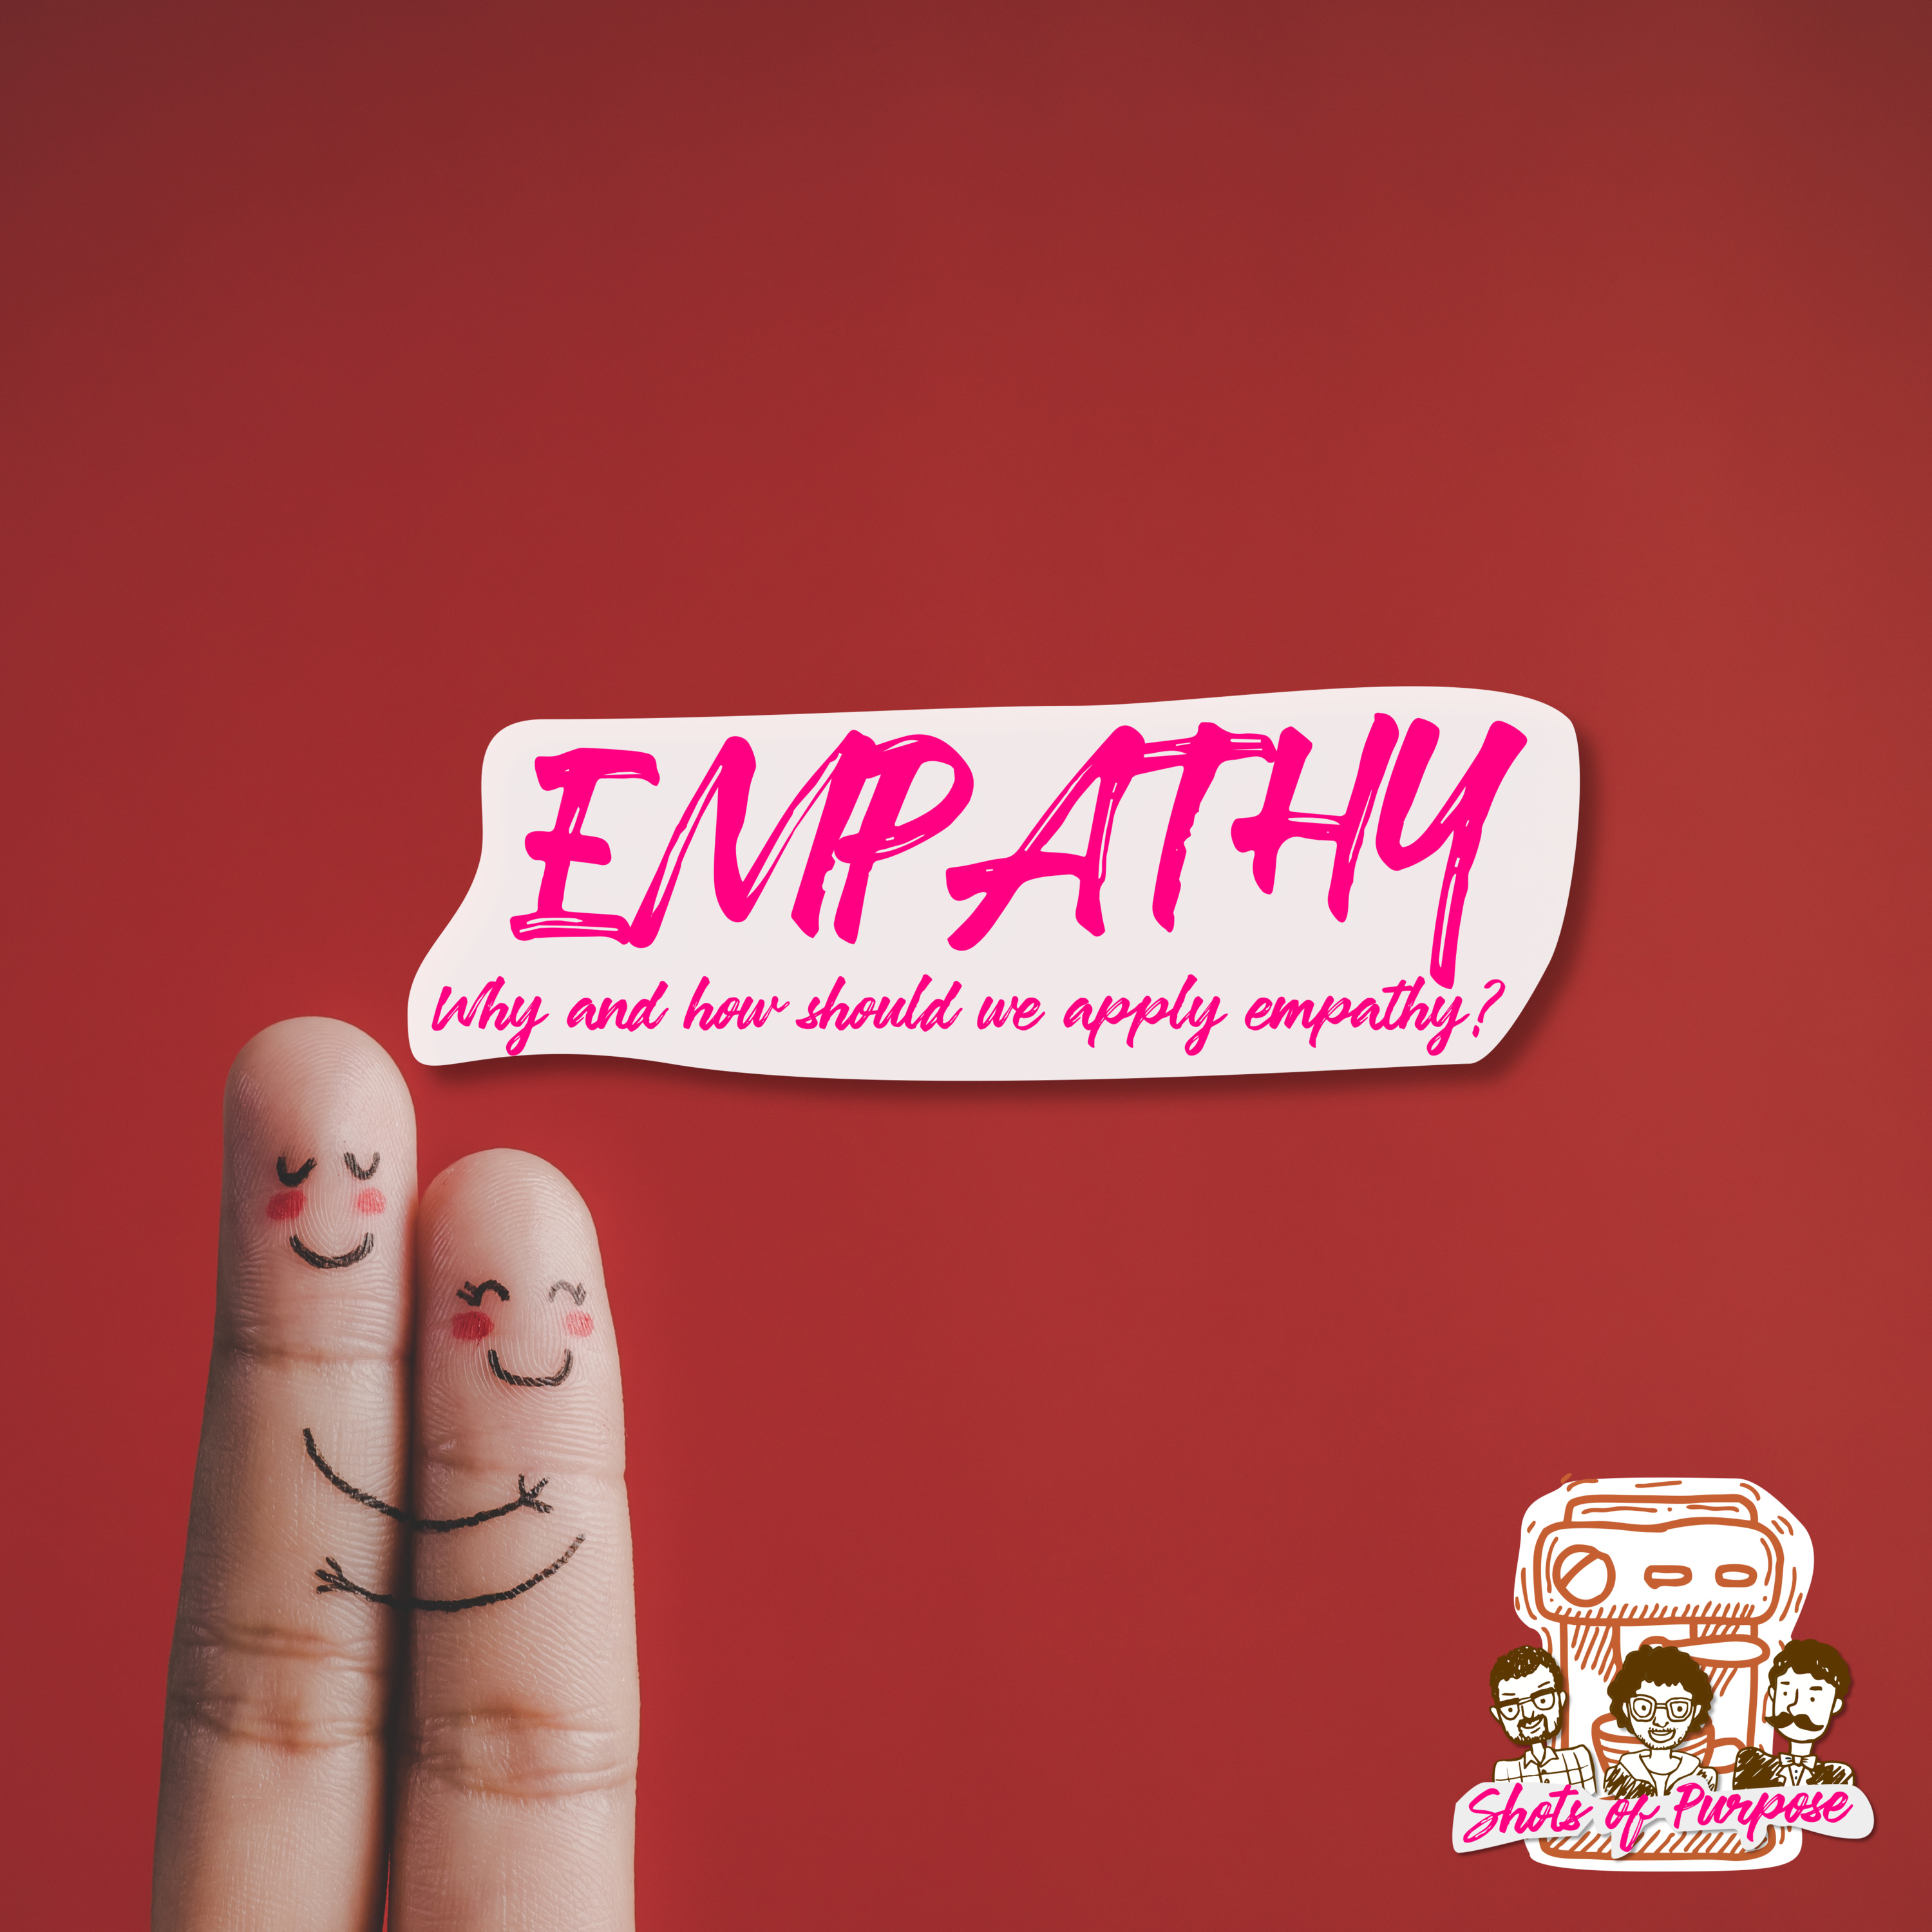 Why and how should we apply empathy in design?